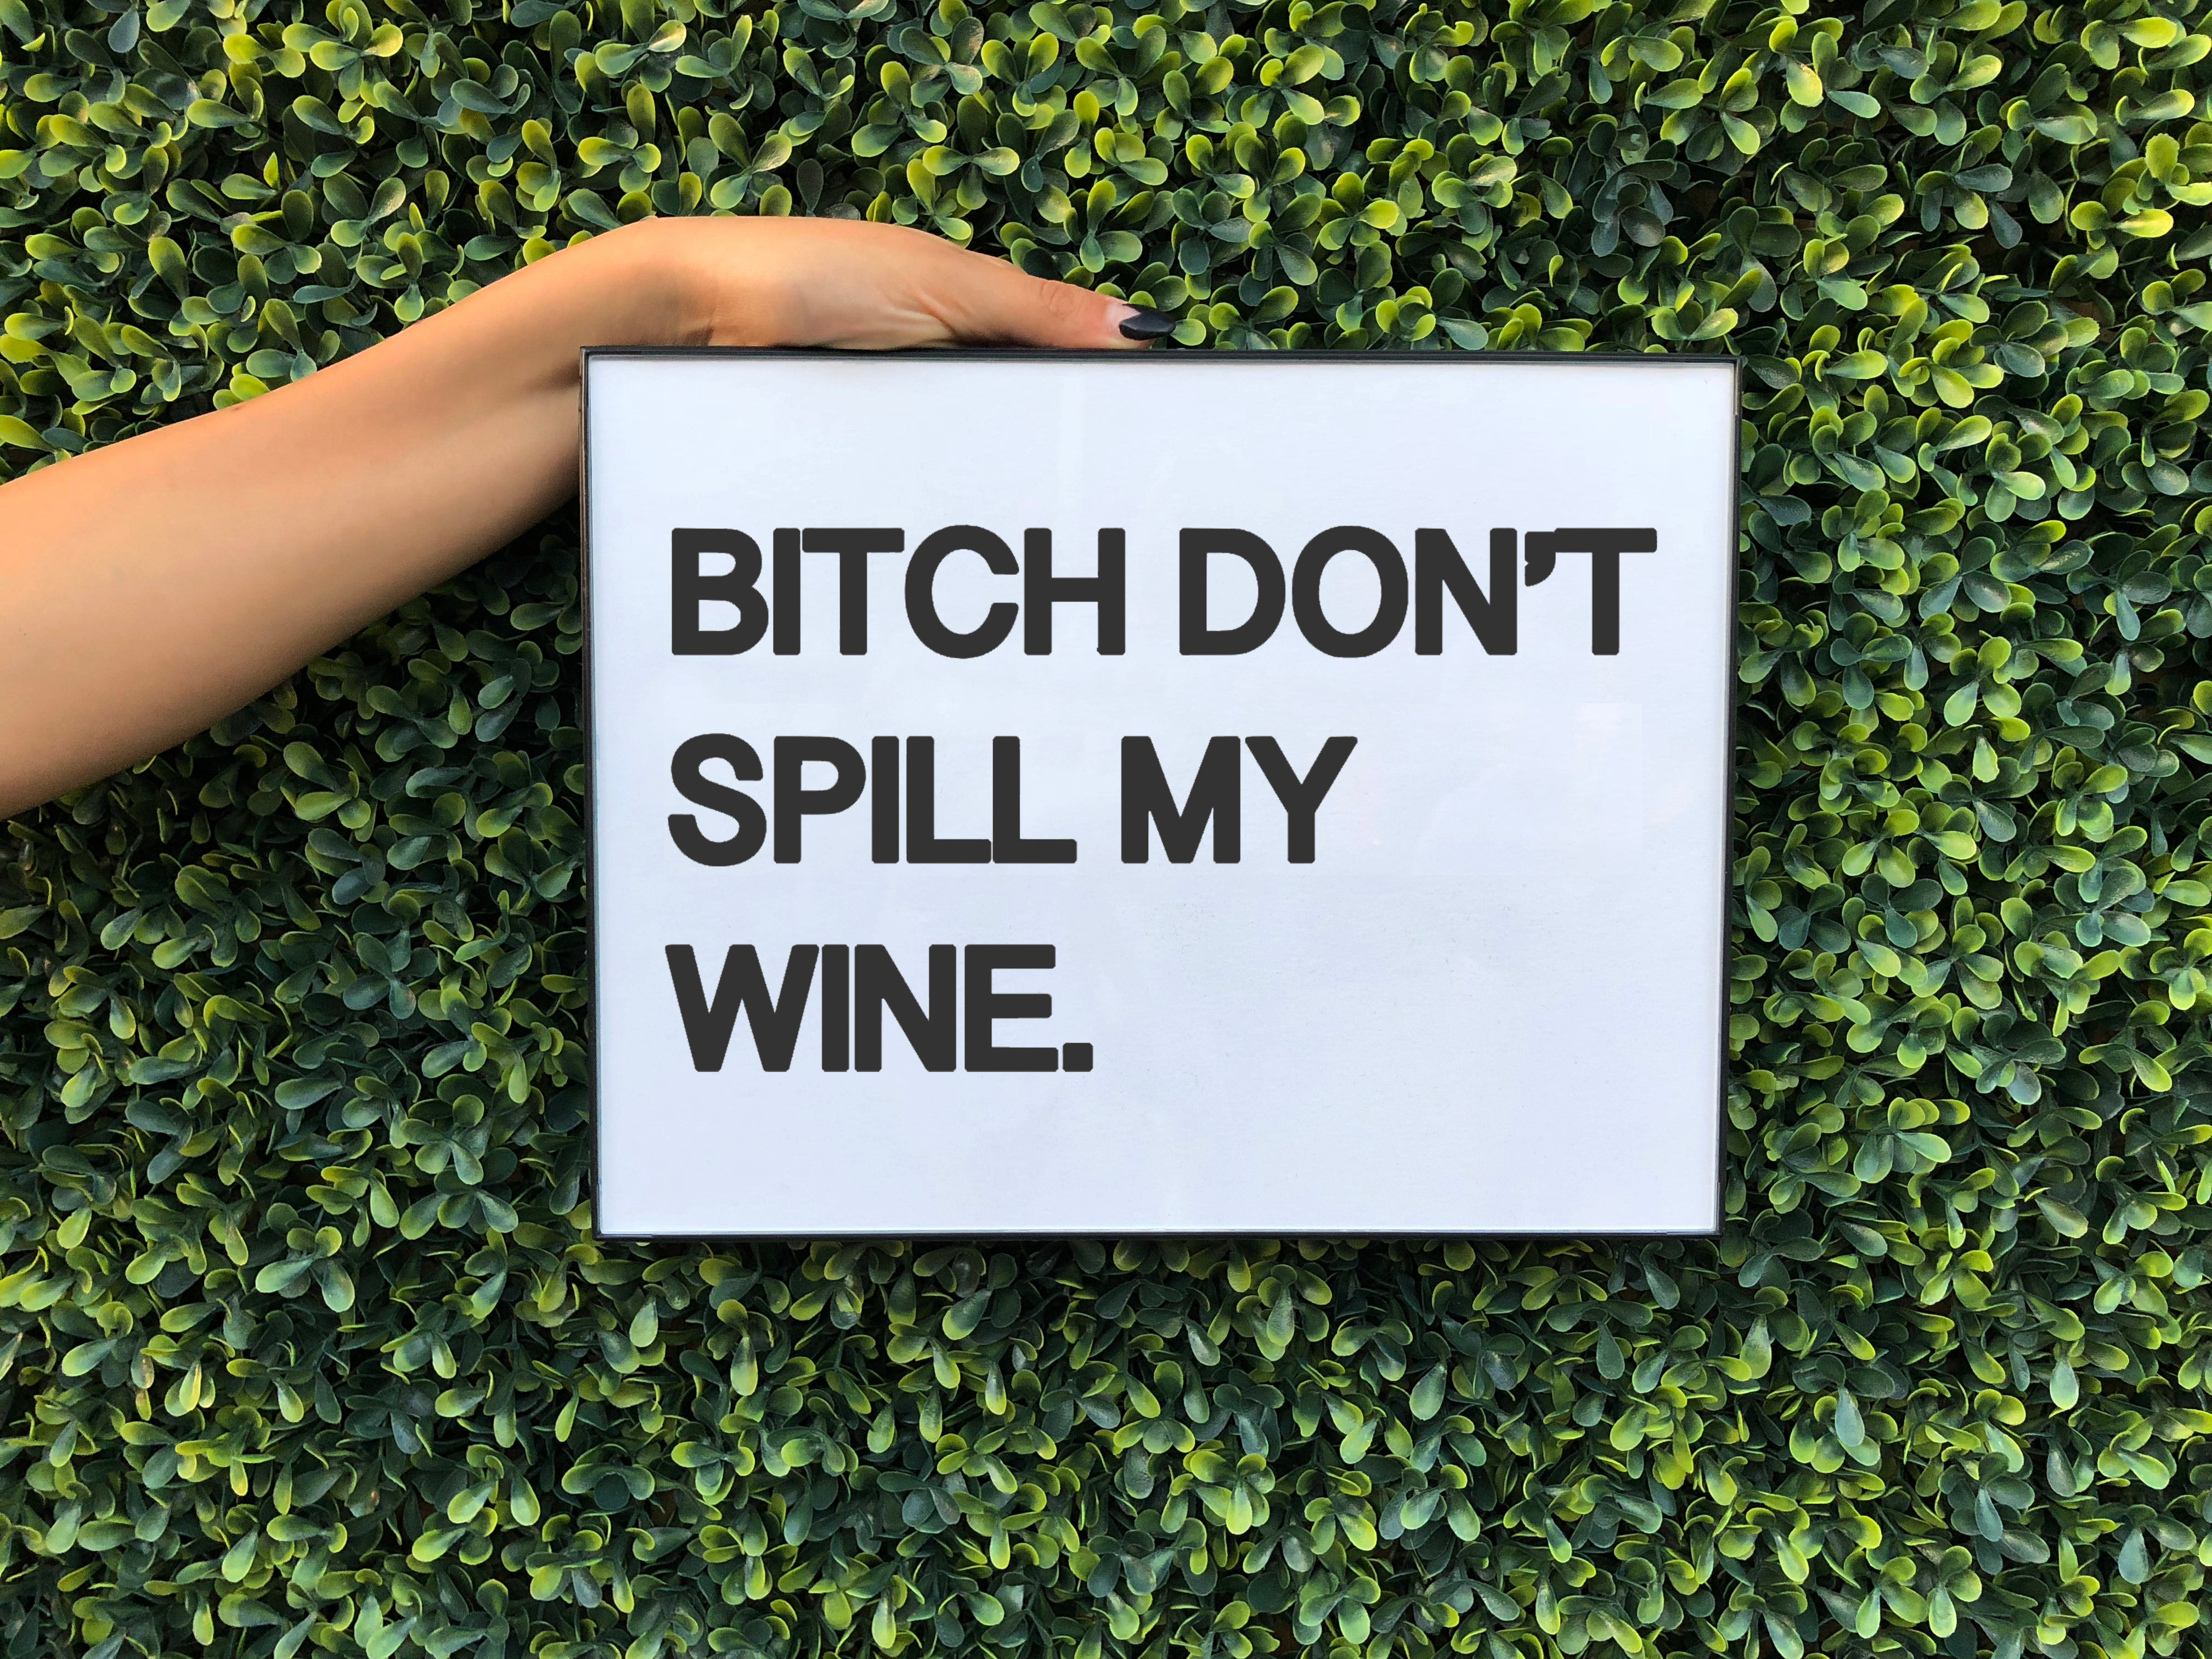 BITCH DON'T SPILL WALL ART